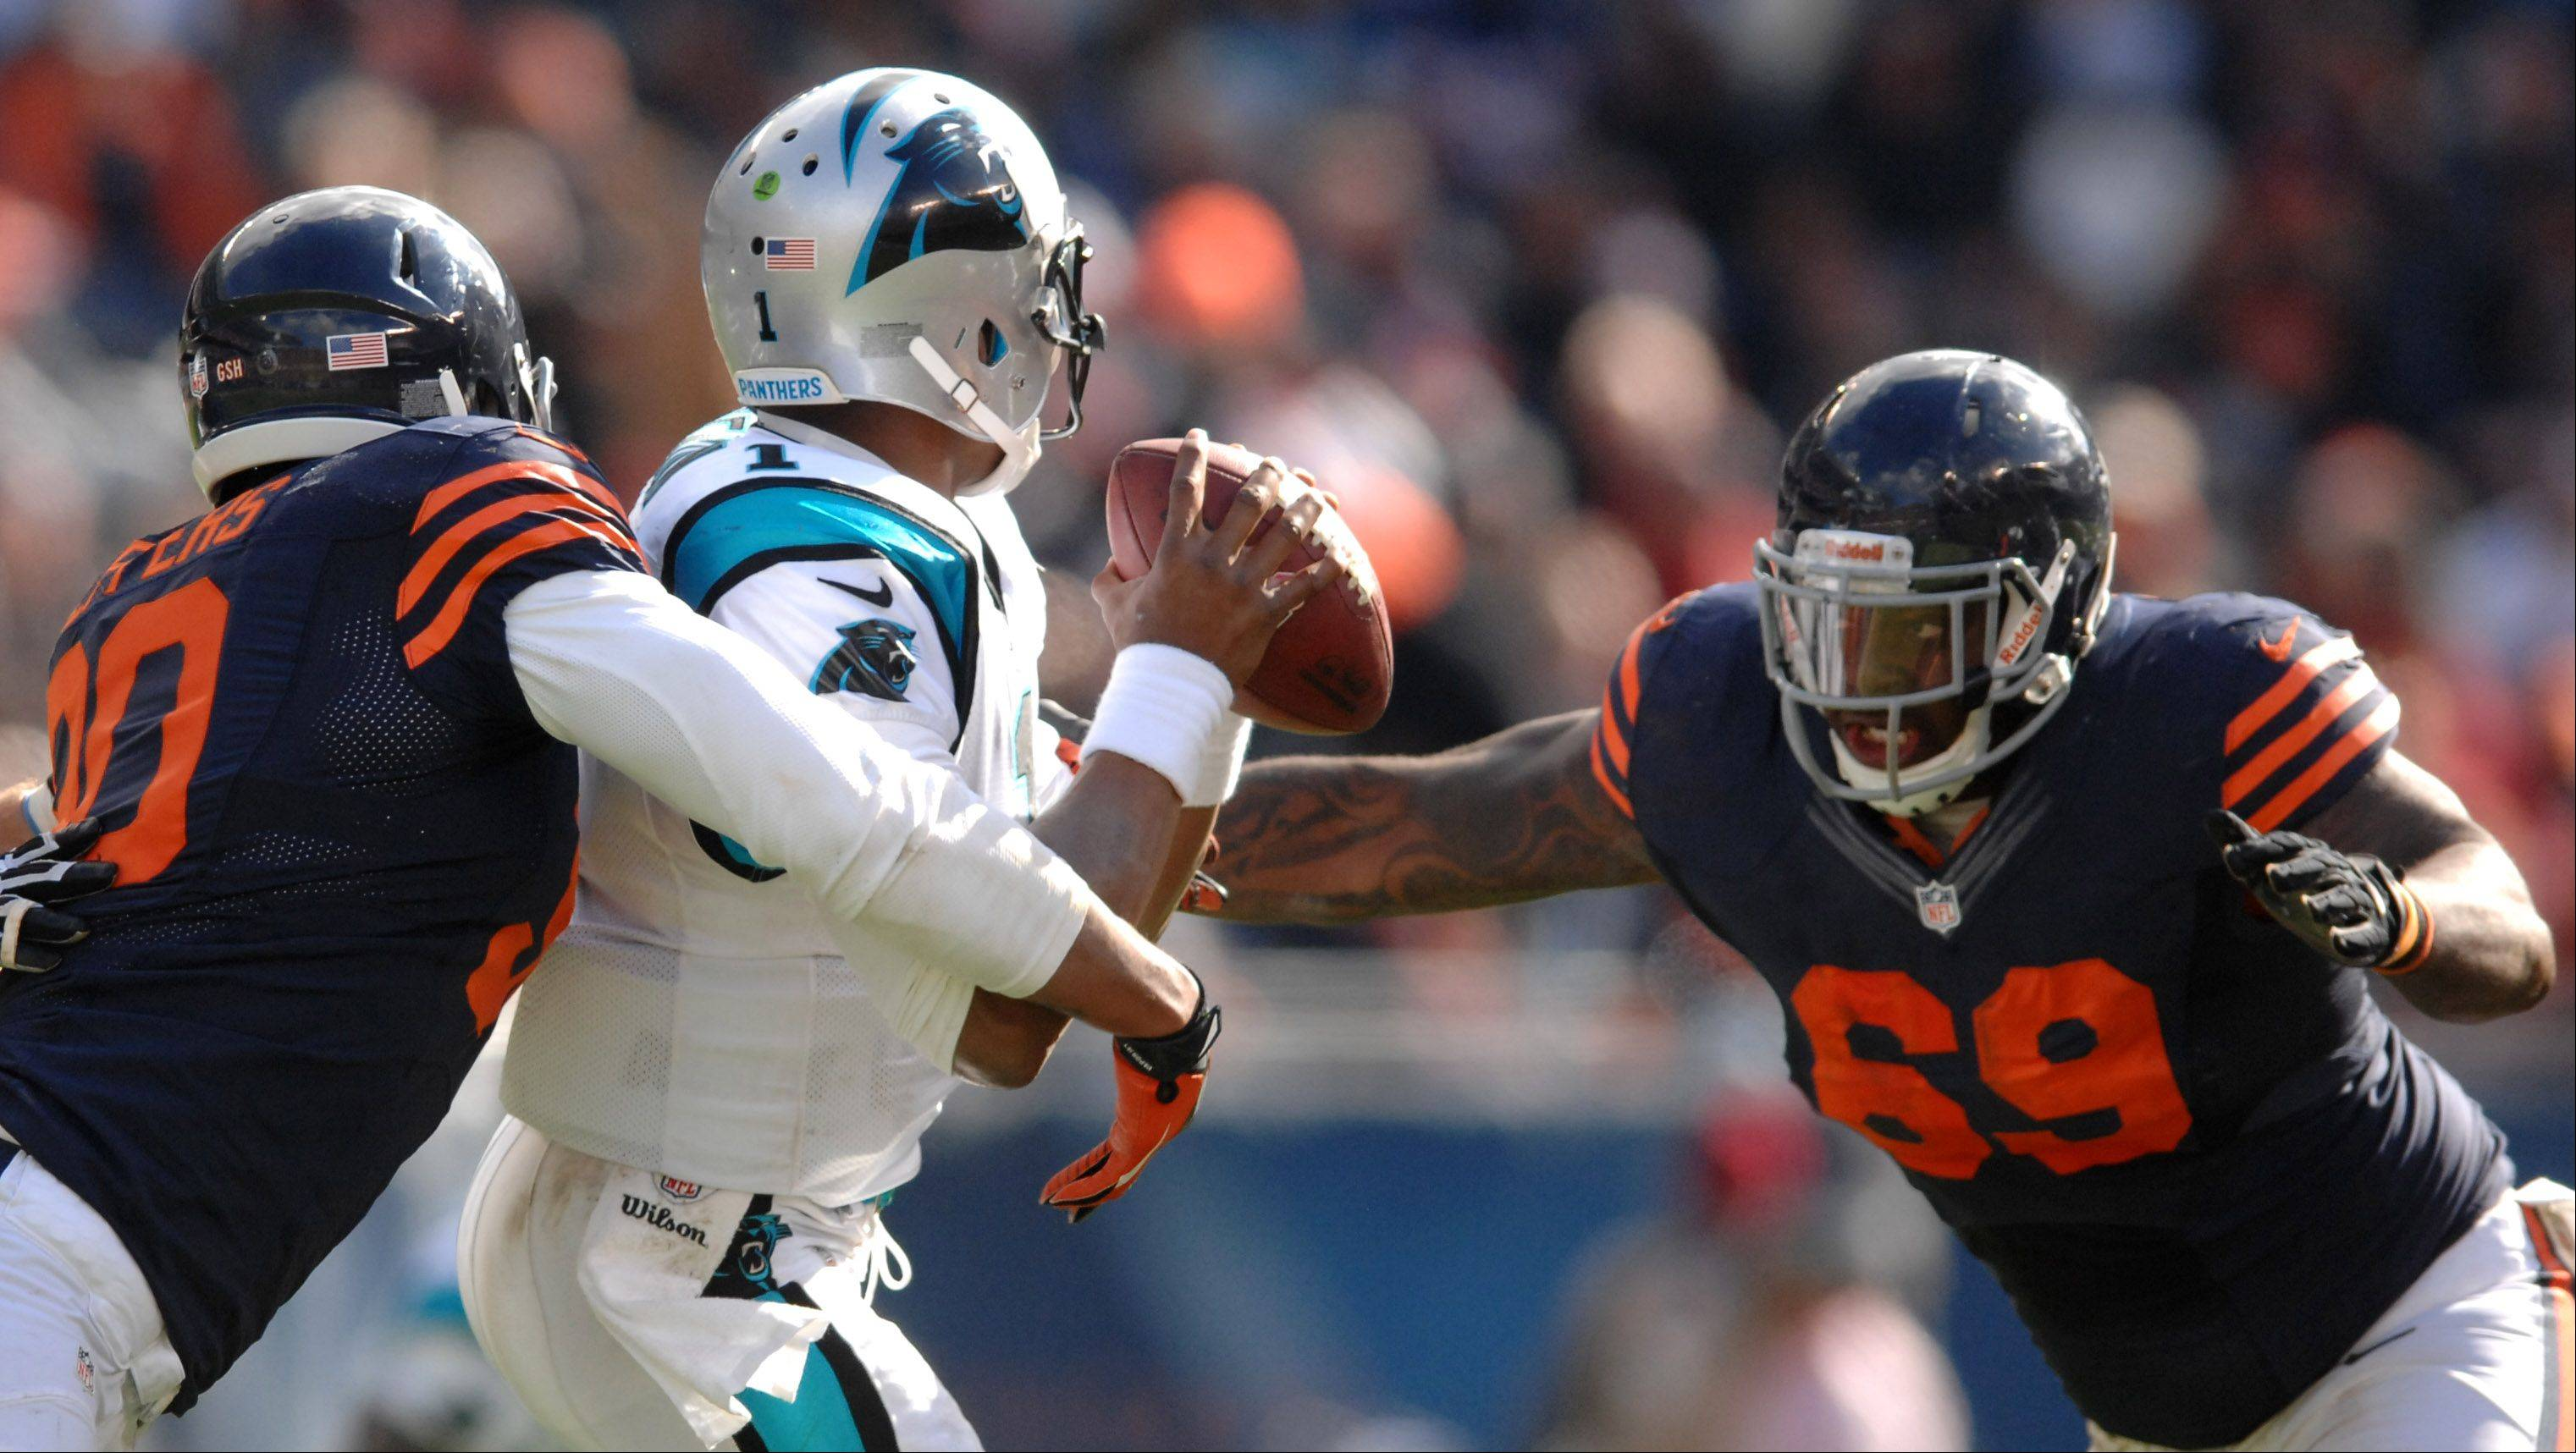 Chicago Bears defensive end Julius Peppers (90) and defensive tackle Henry Melton (69) converge for a sack of Carolina Panthers quarterback Cam Newton (1) during Sunday's game at Soldier Field in Chicago.